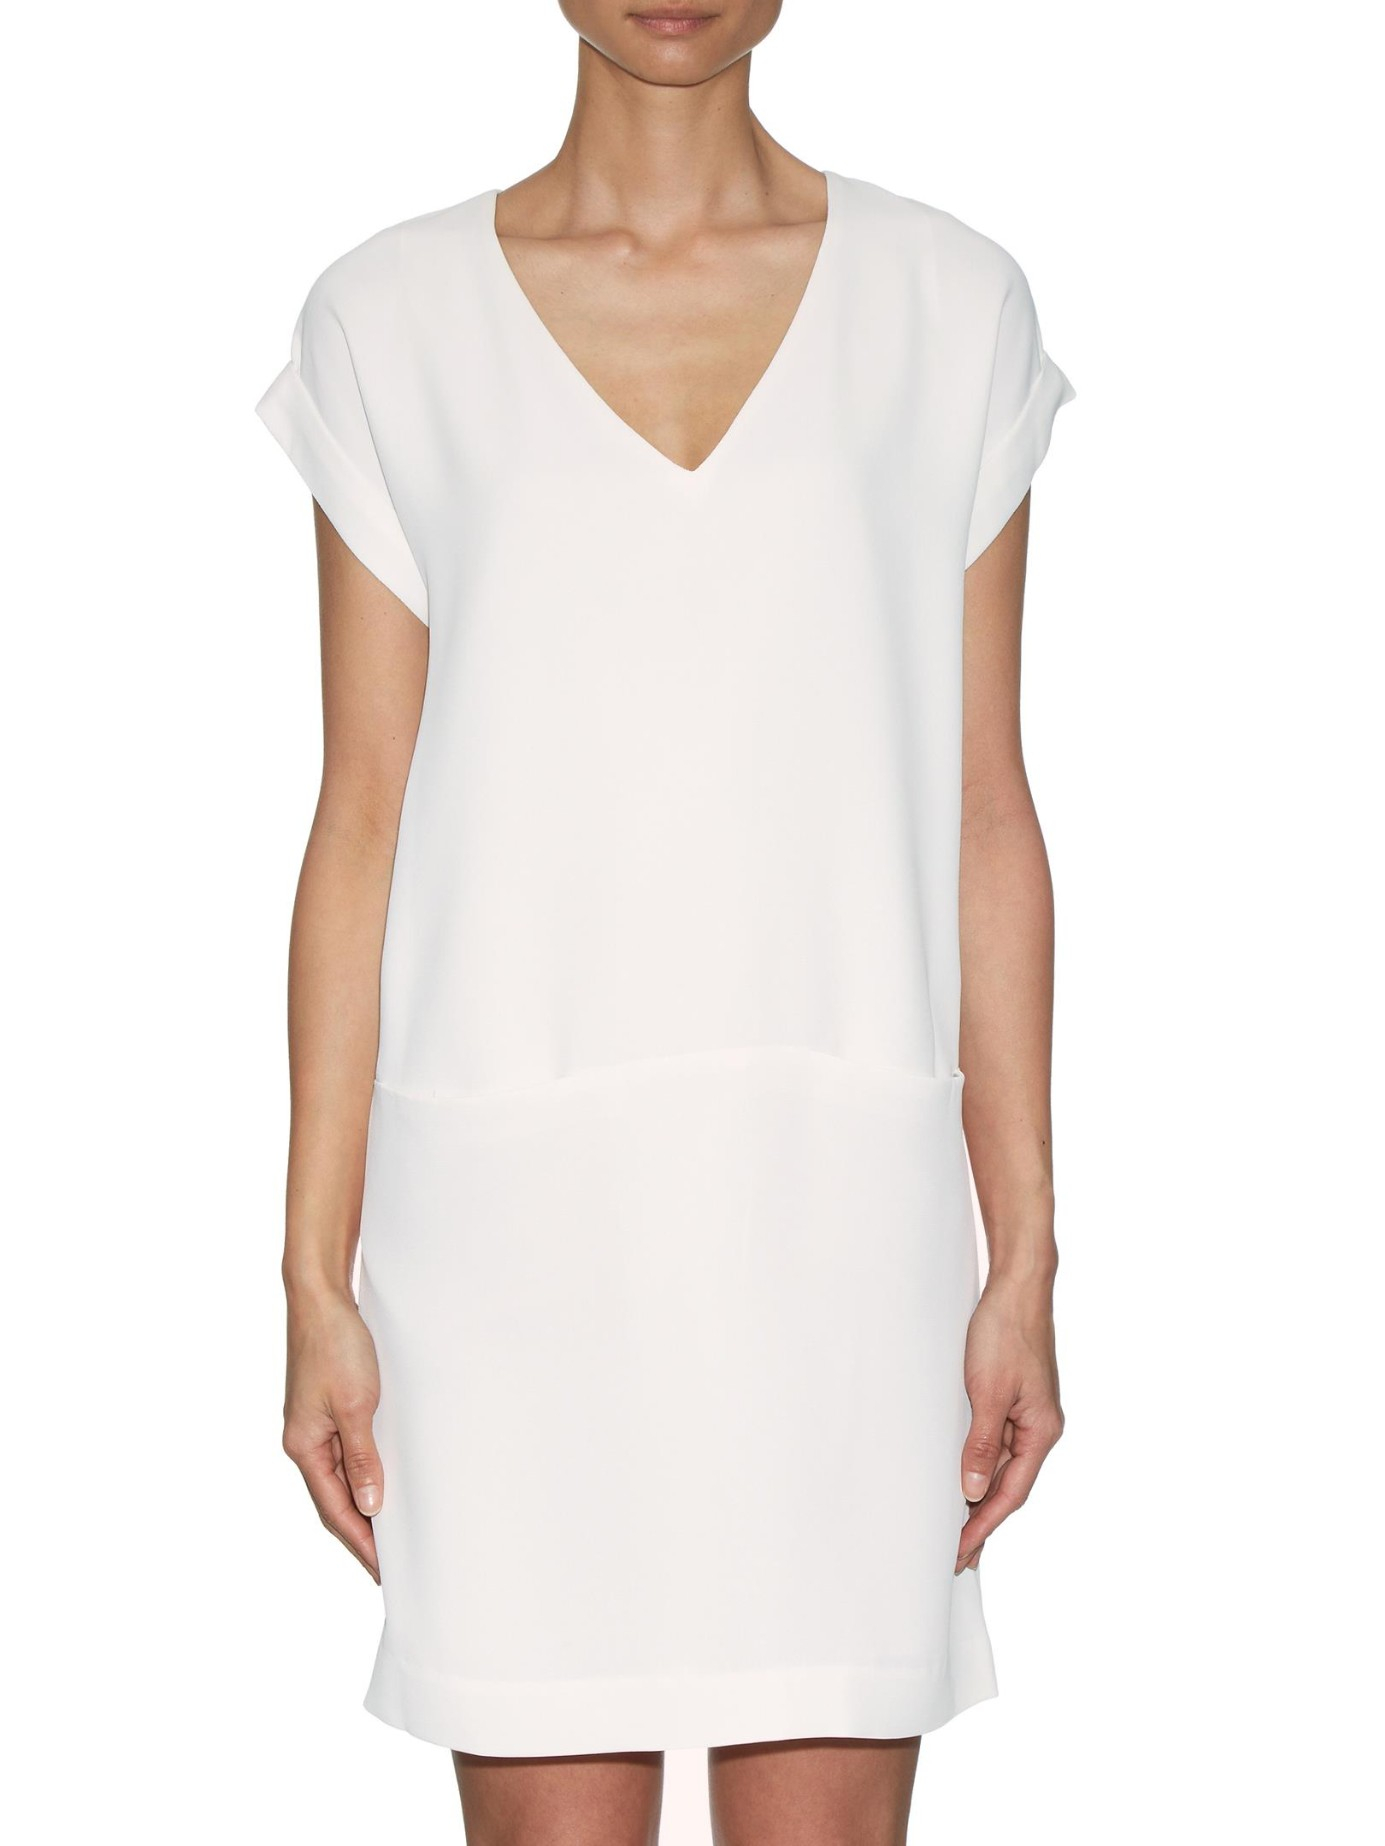 Vince piqu t shirt dress in white lyst for Vince tee shirts sale